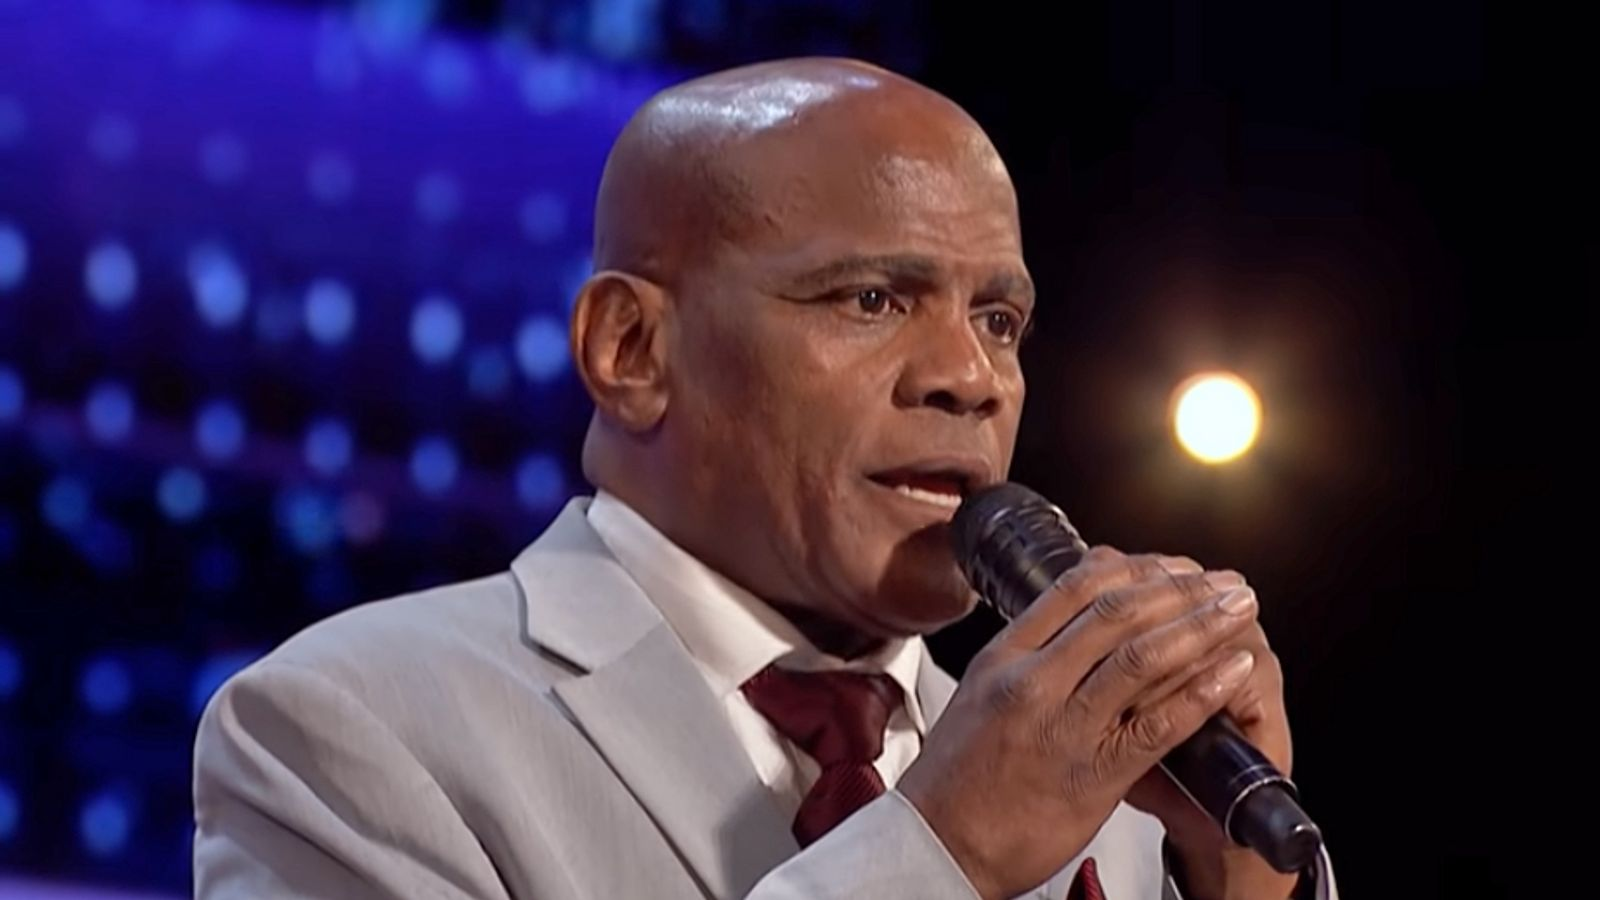 Wrongfully convicted man tipped to win America's Got Talent after 37 years in jail - EpicNews